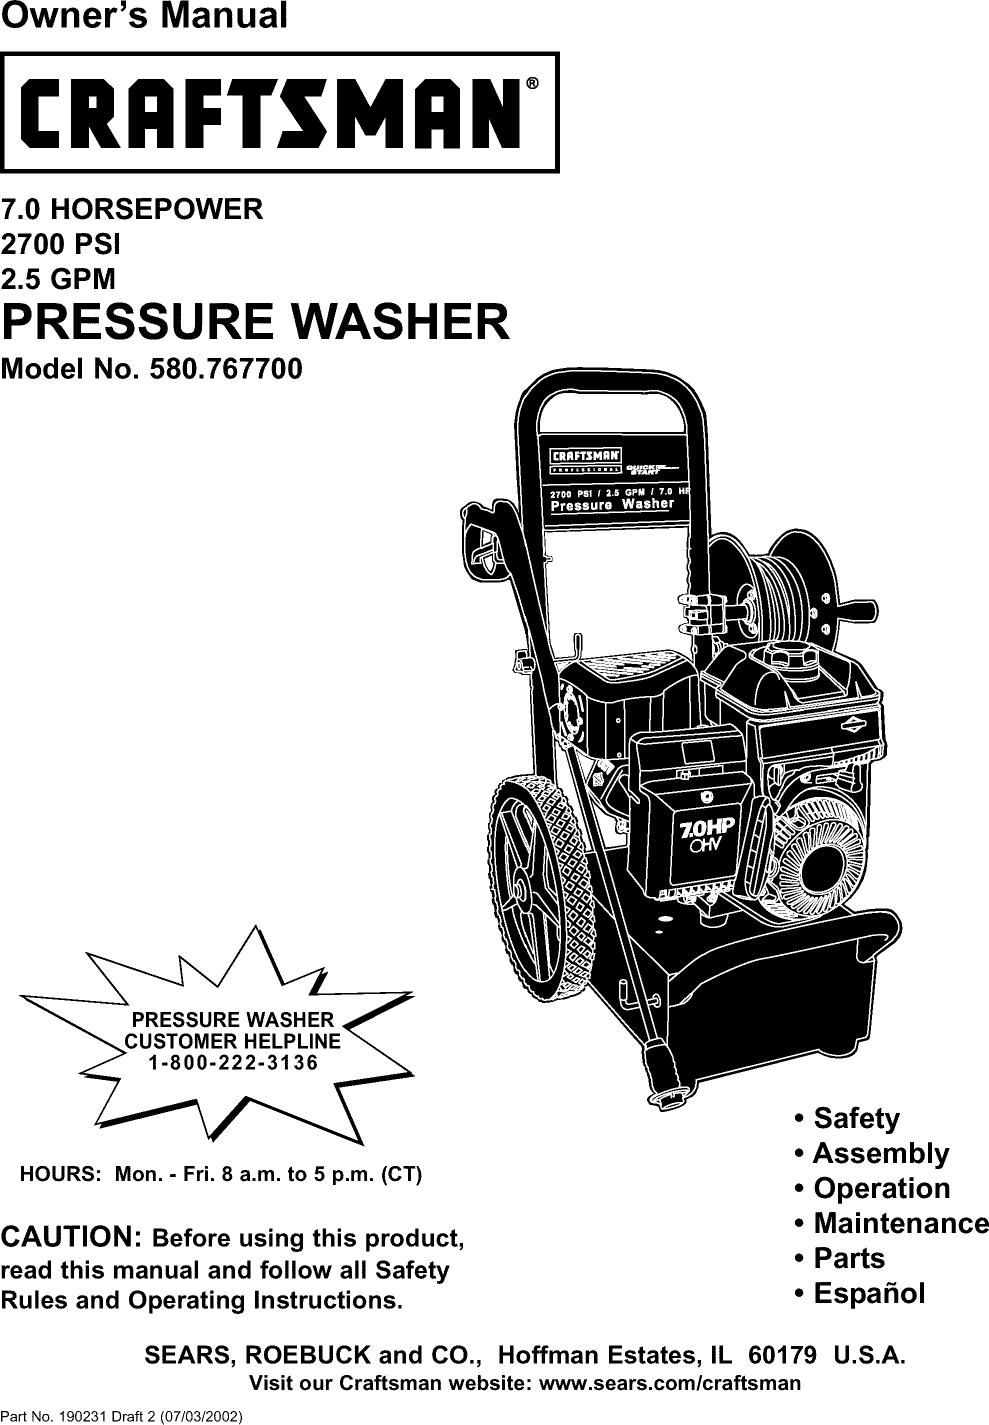 craftsman 580767700 user manual pressure washer manuals and guides